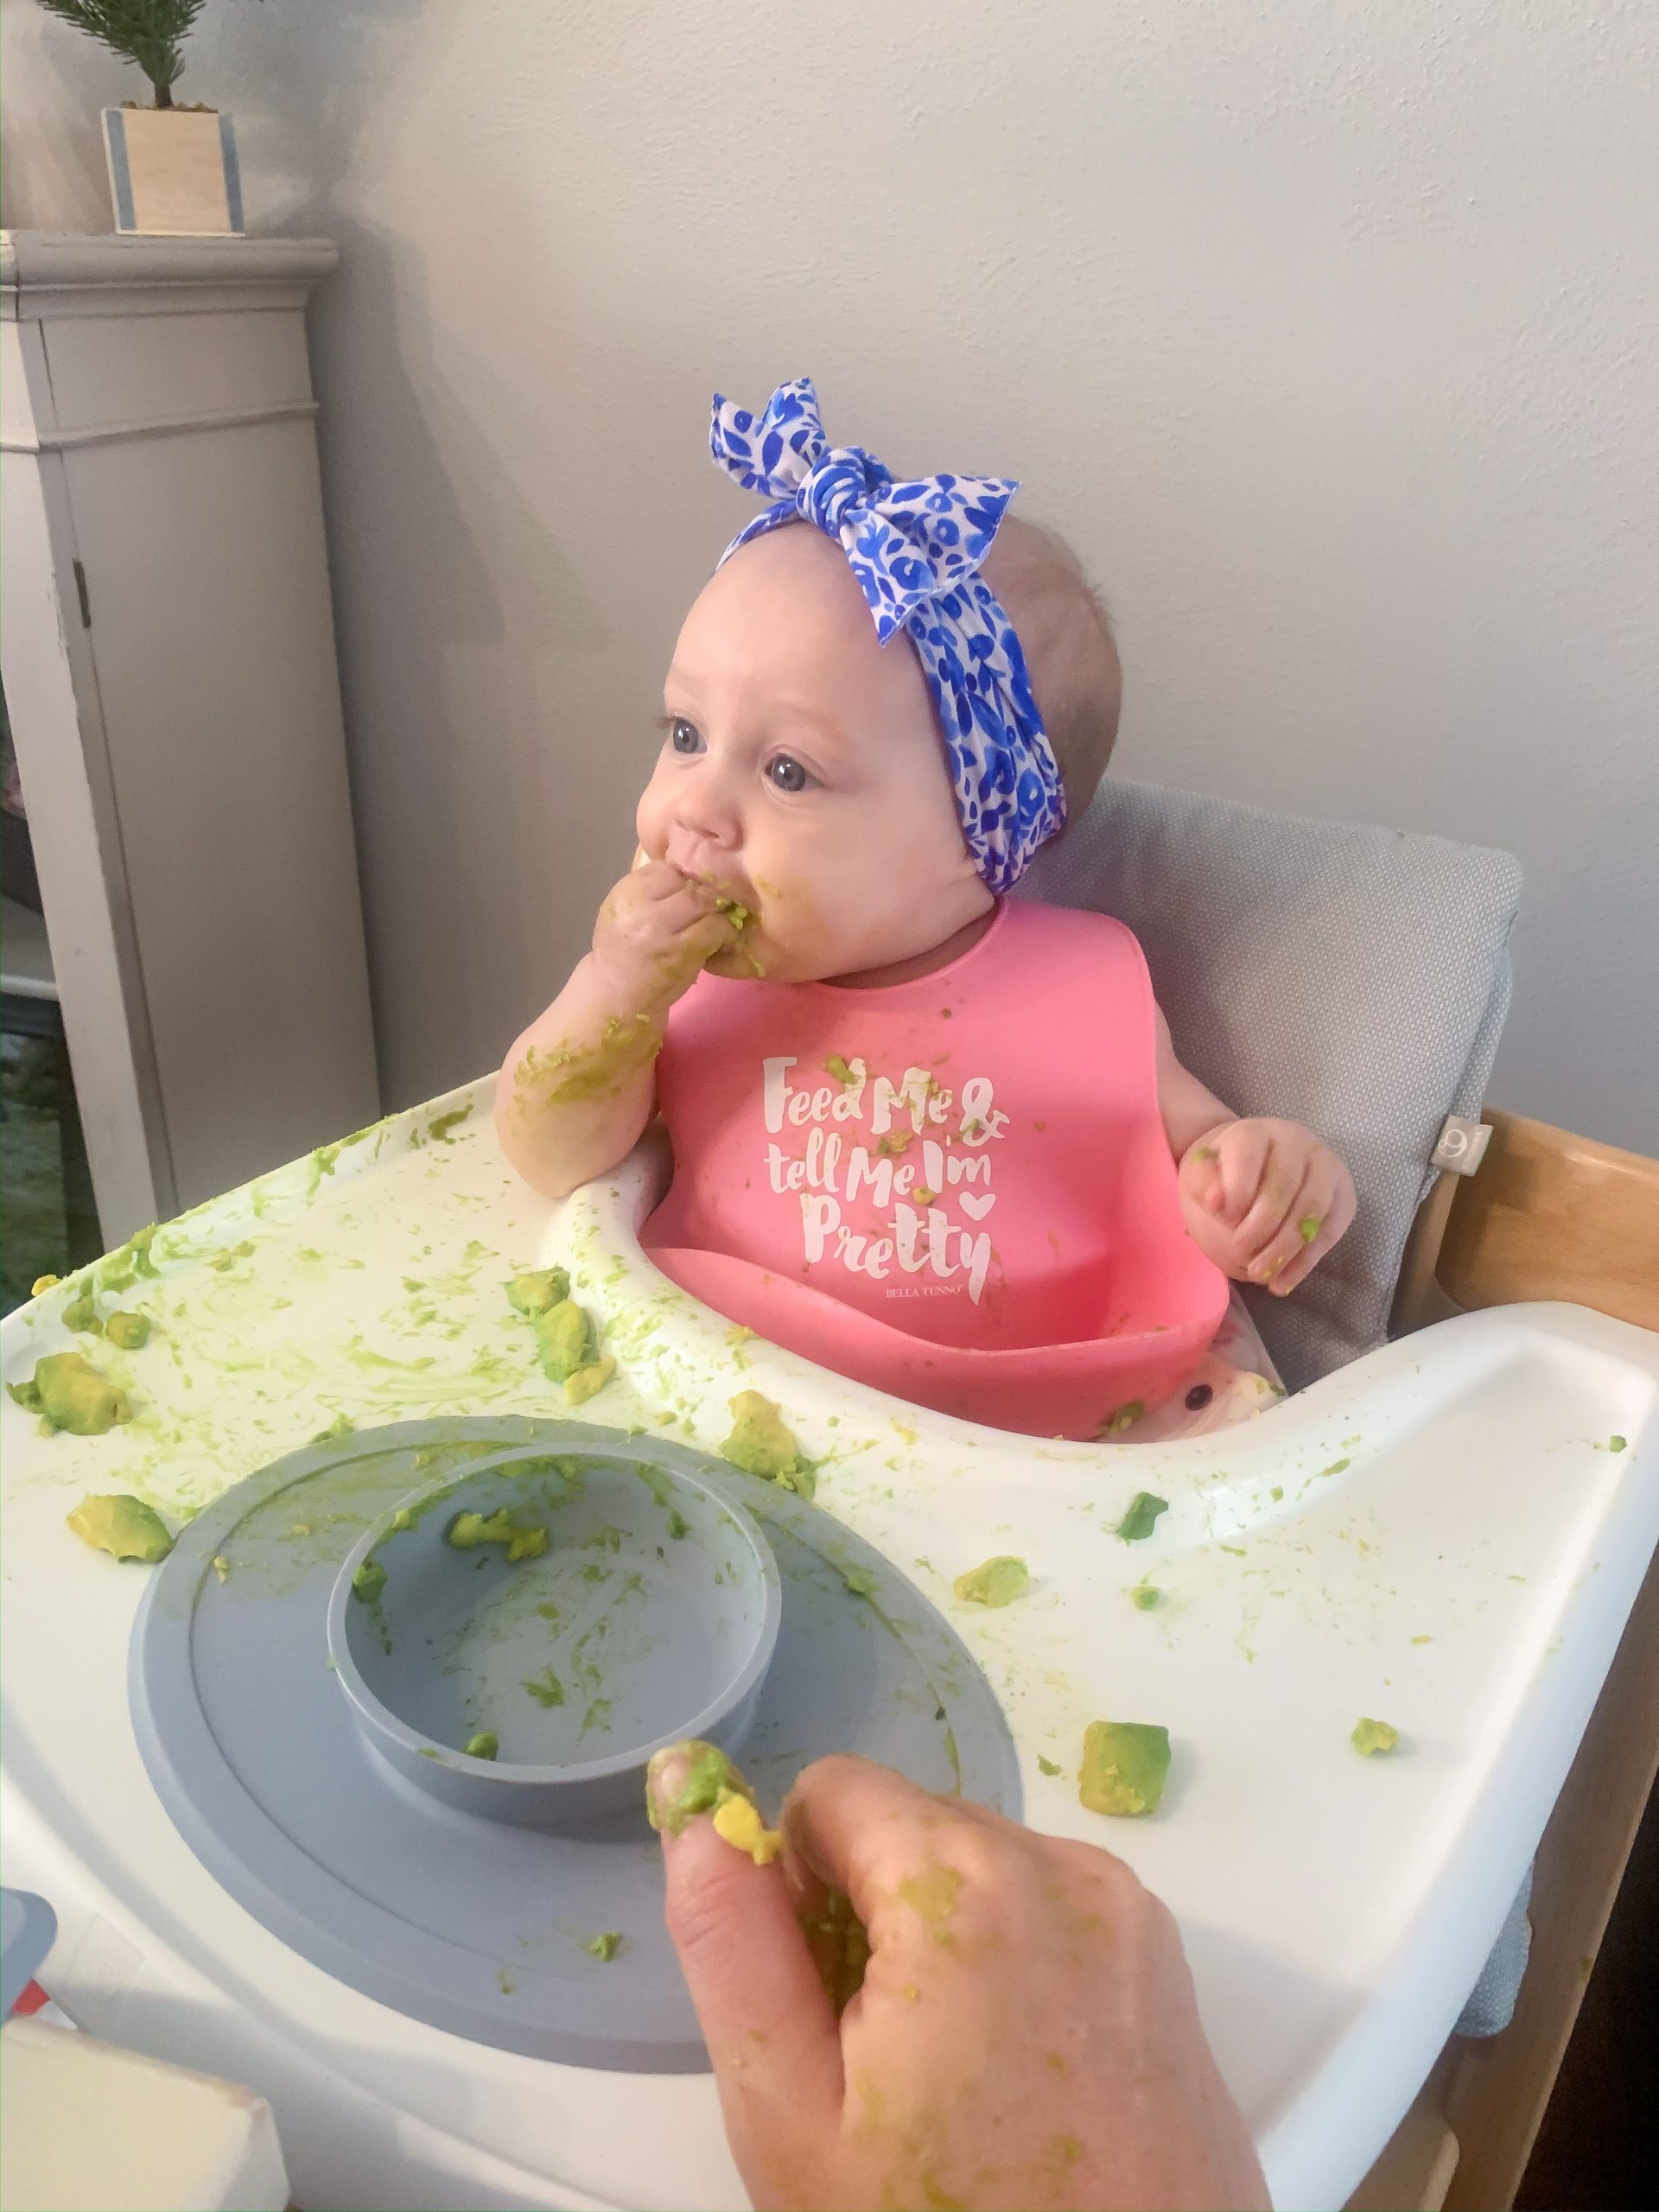 100 first foods for baby, best starter foods for baby, baby-led weaning journey blog 2020